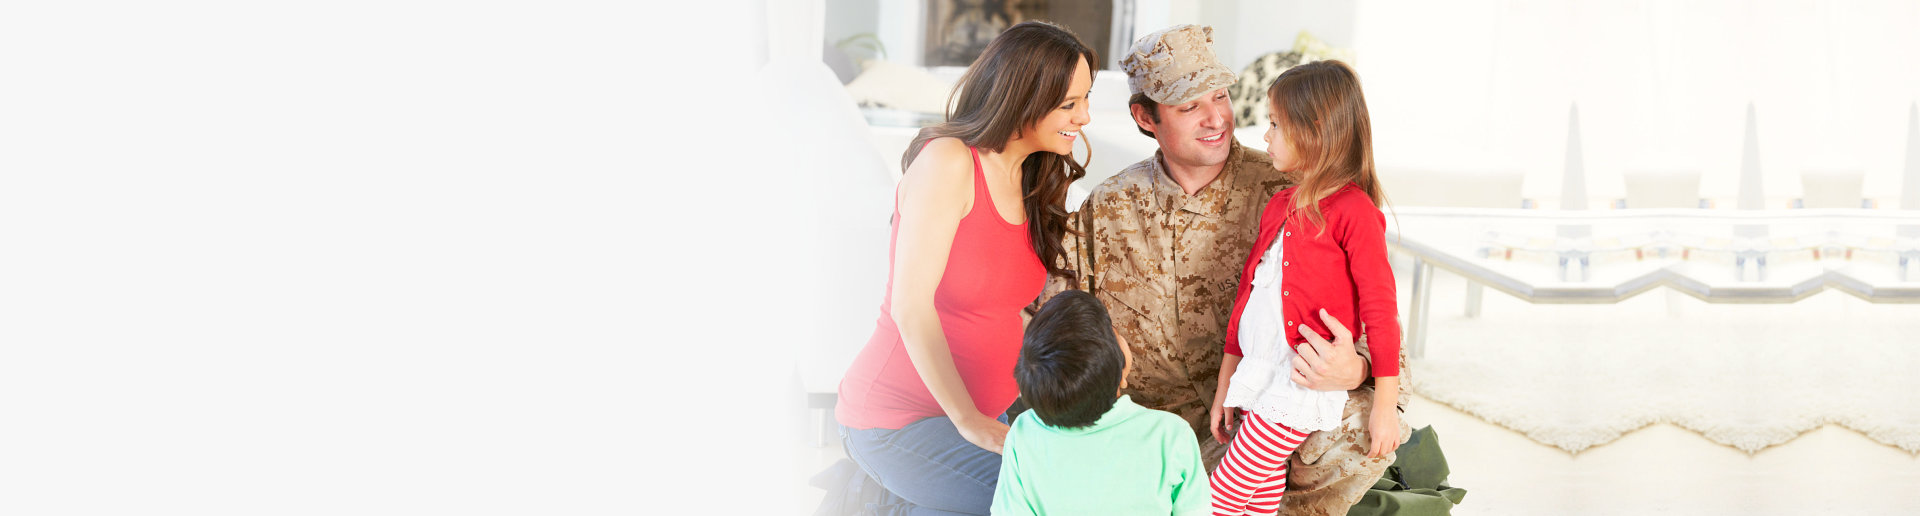 Military father with his family